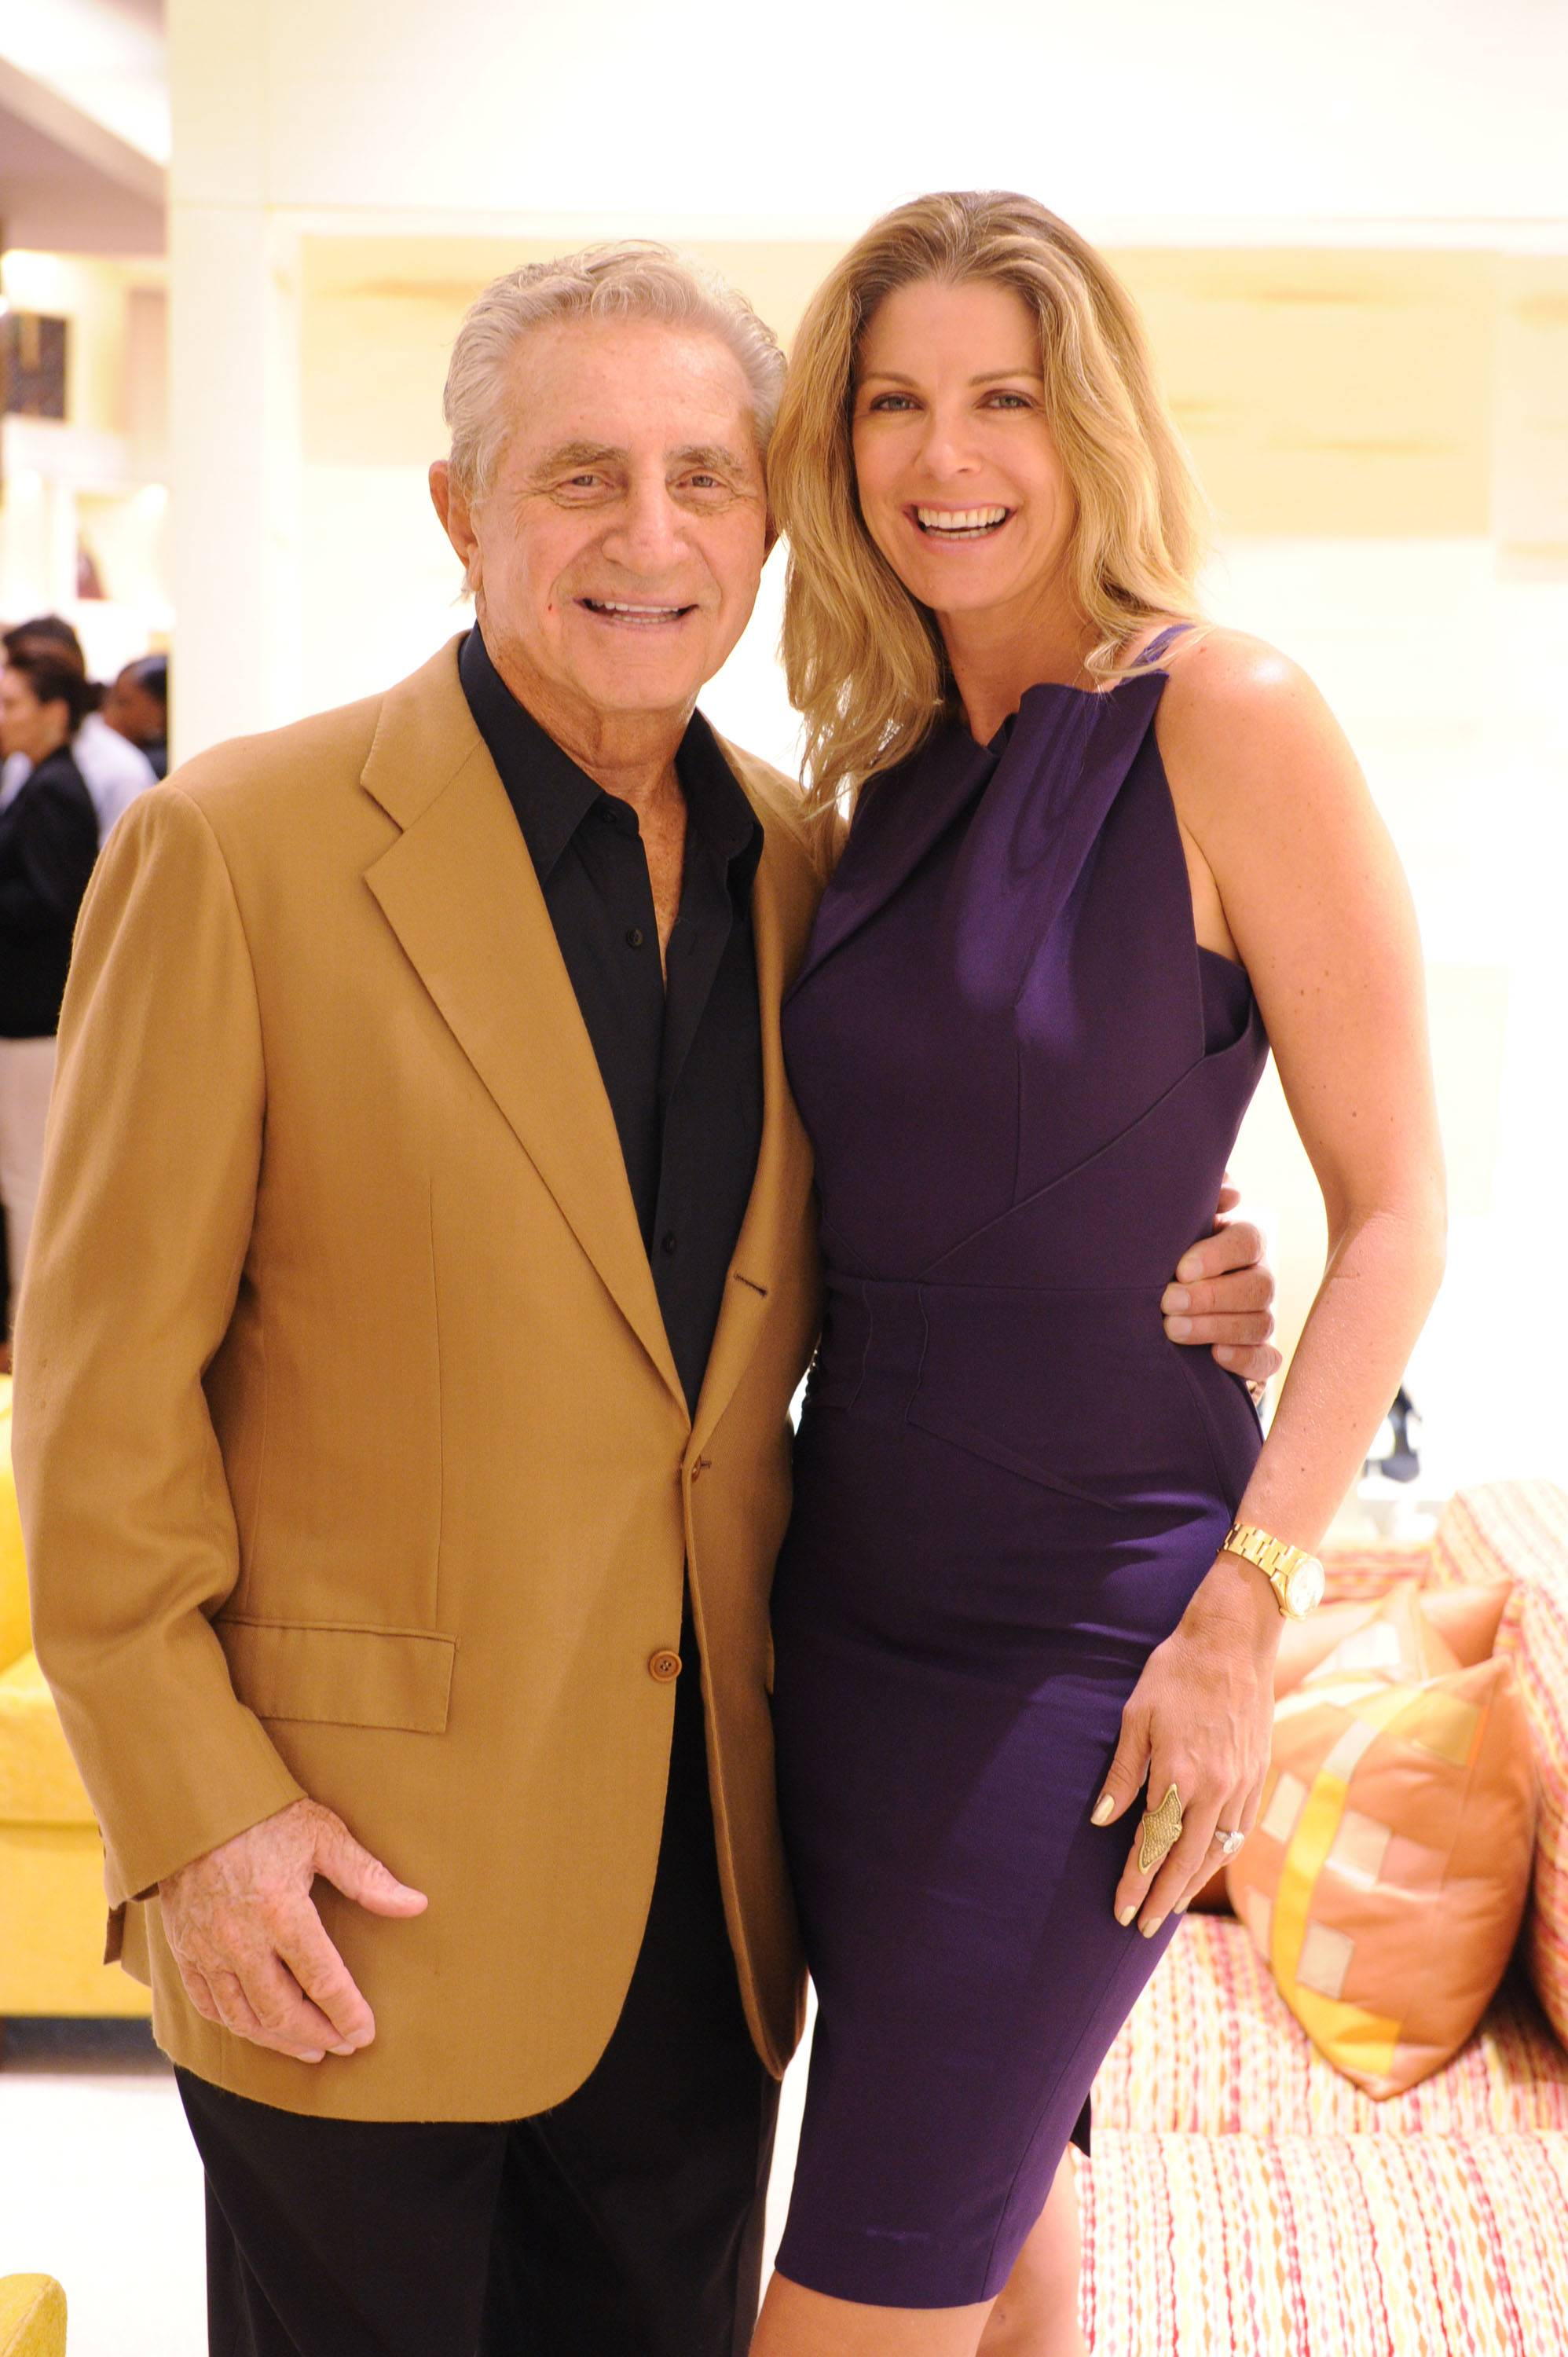 Don Soffer & Michele King